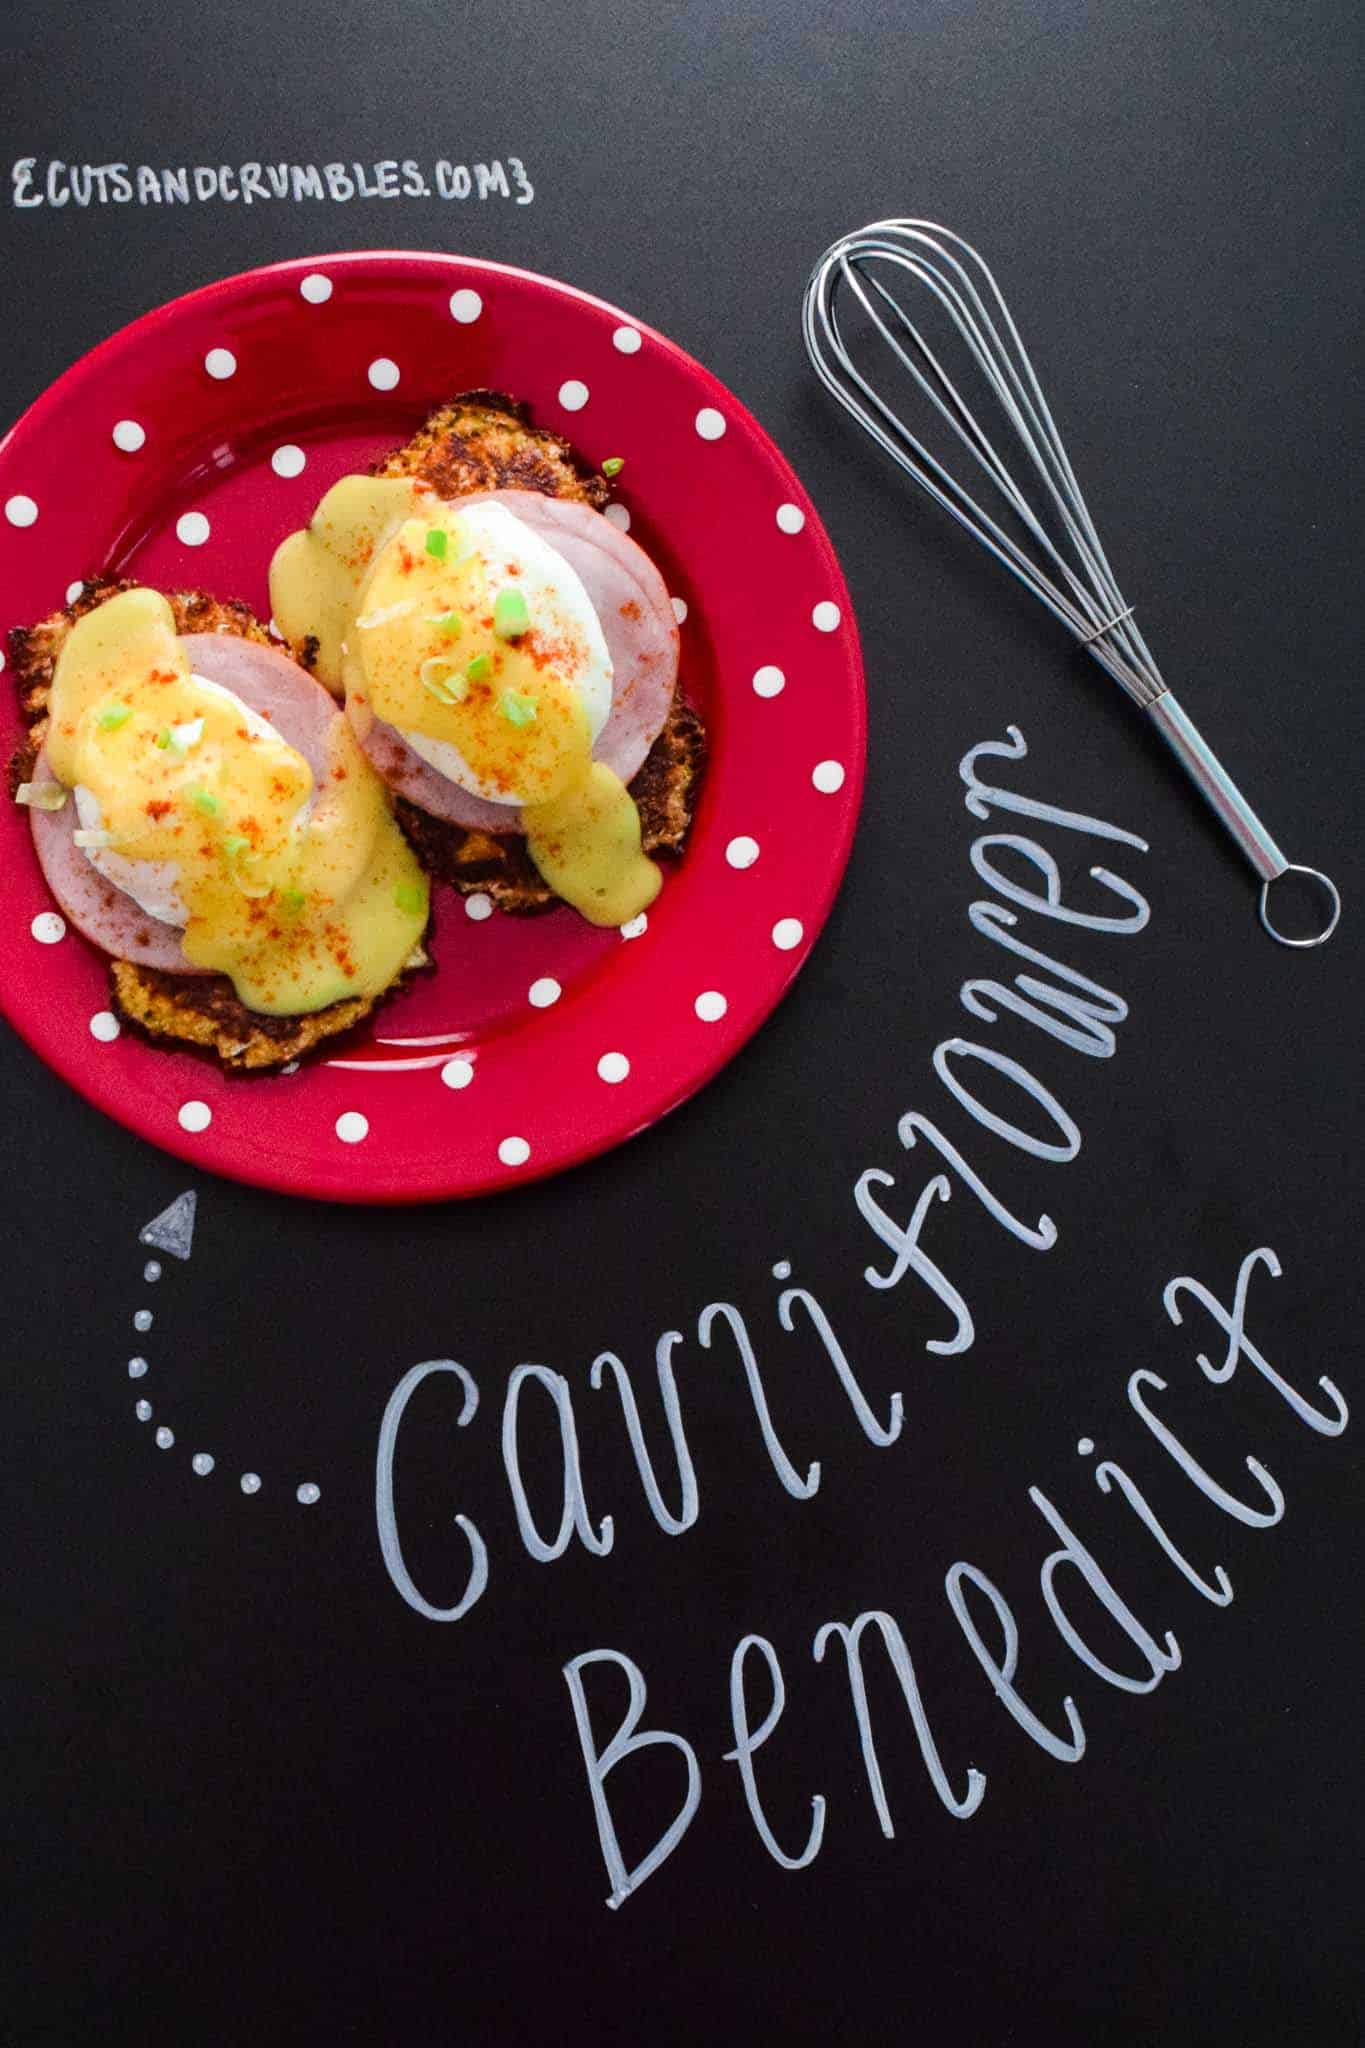 cauliflower benedict on red plate with title written on chalkboard